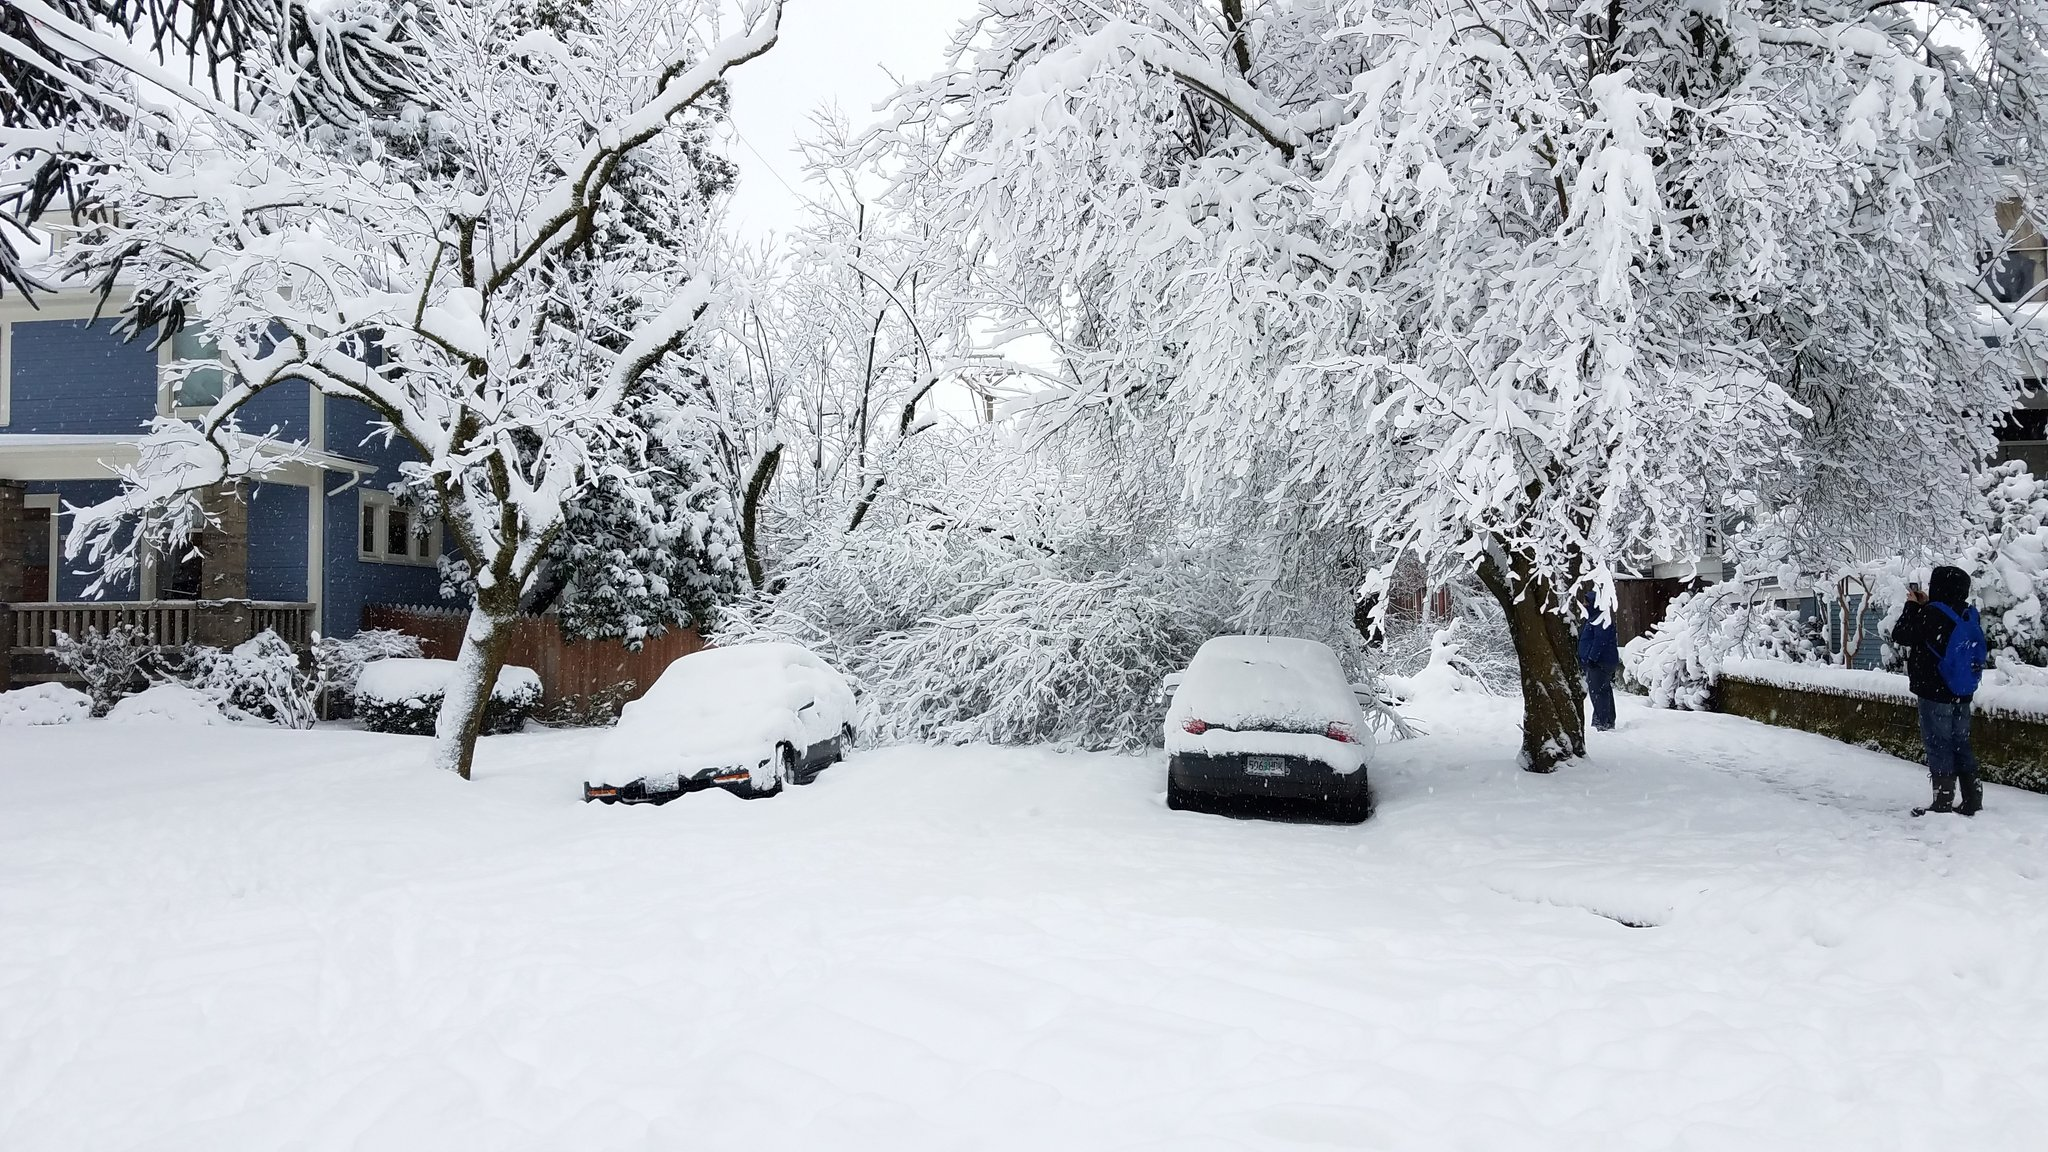 kgw.com | KGW Reporter Notebook: January 2017 snowstorm in